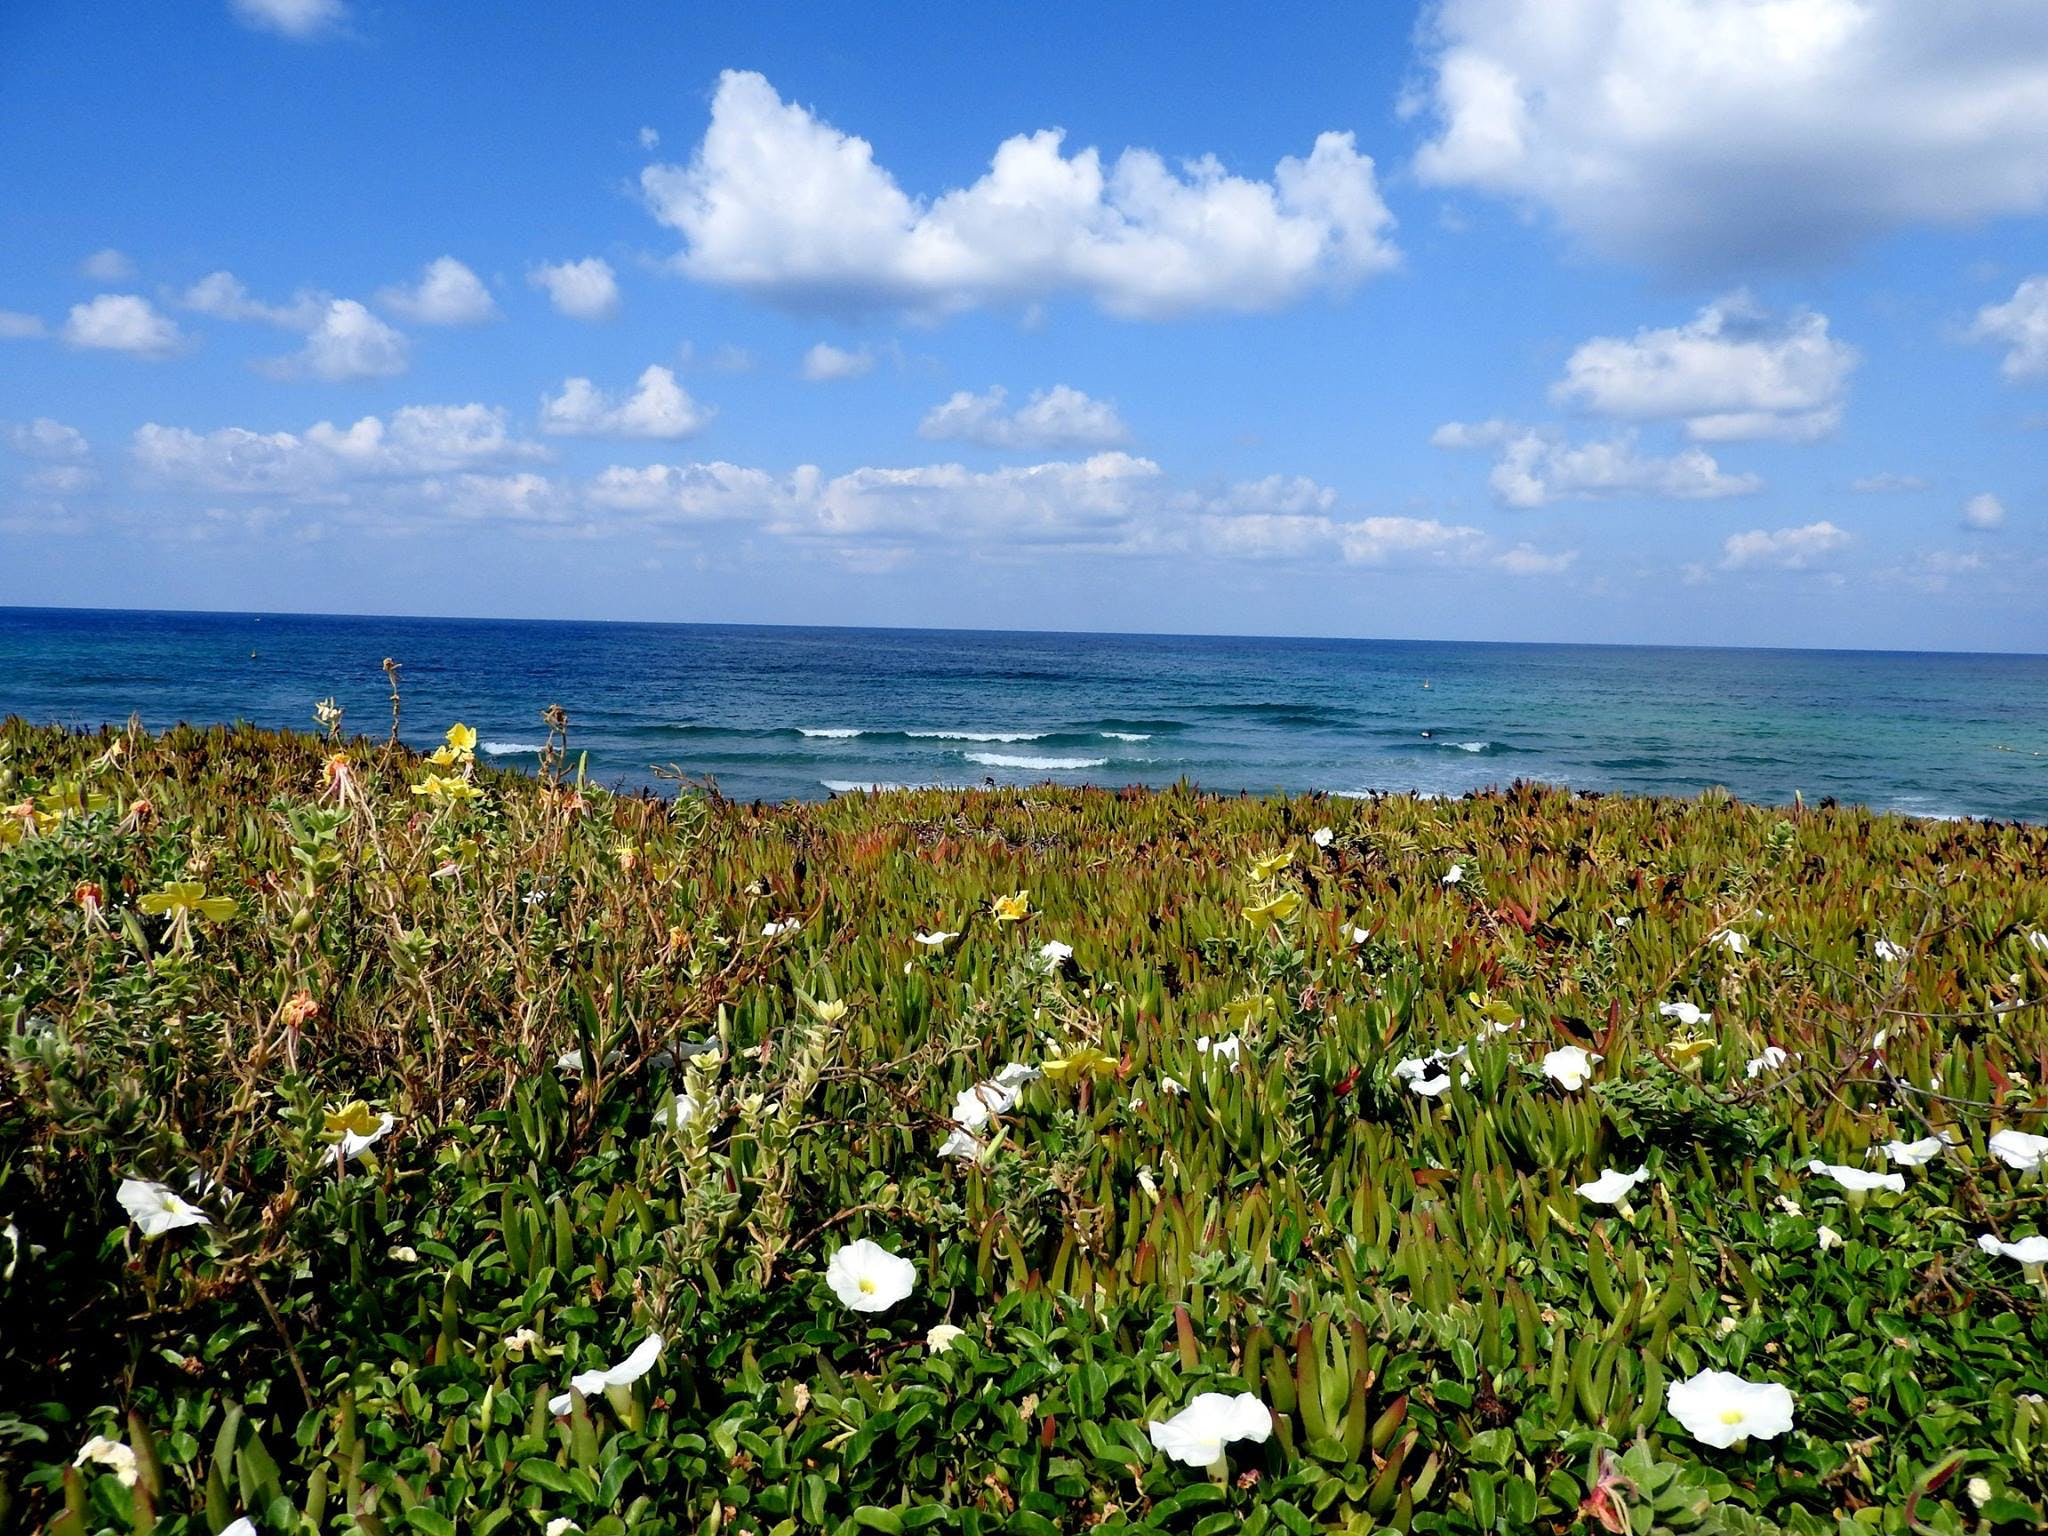 Free stock photo of beach, bed of flowers, cloud, clouds